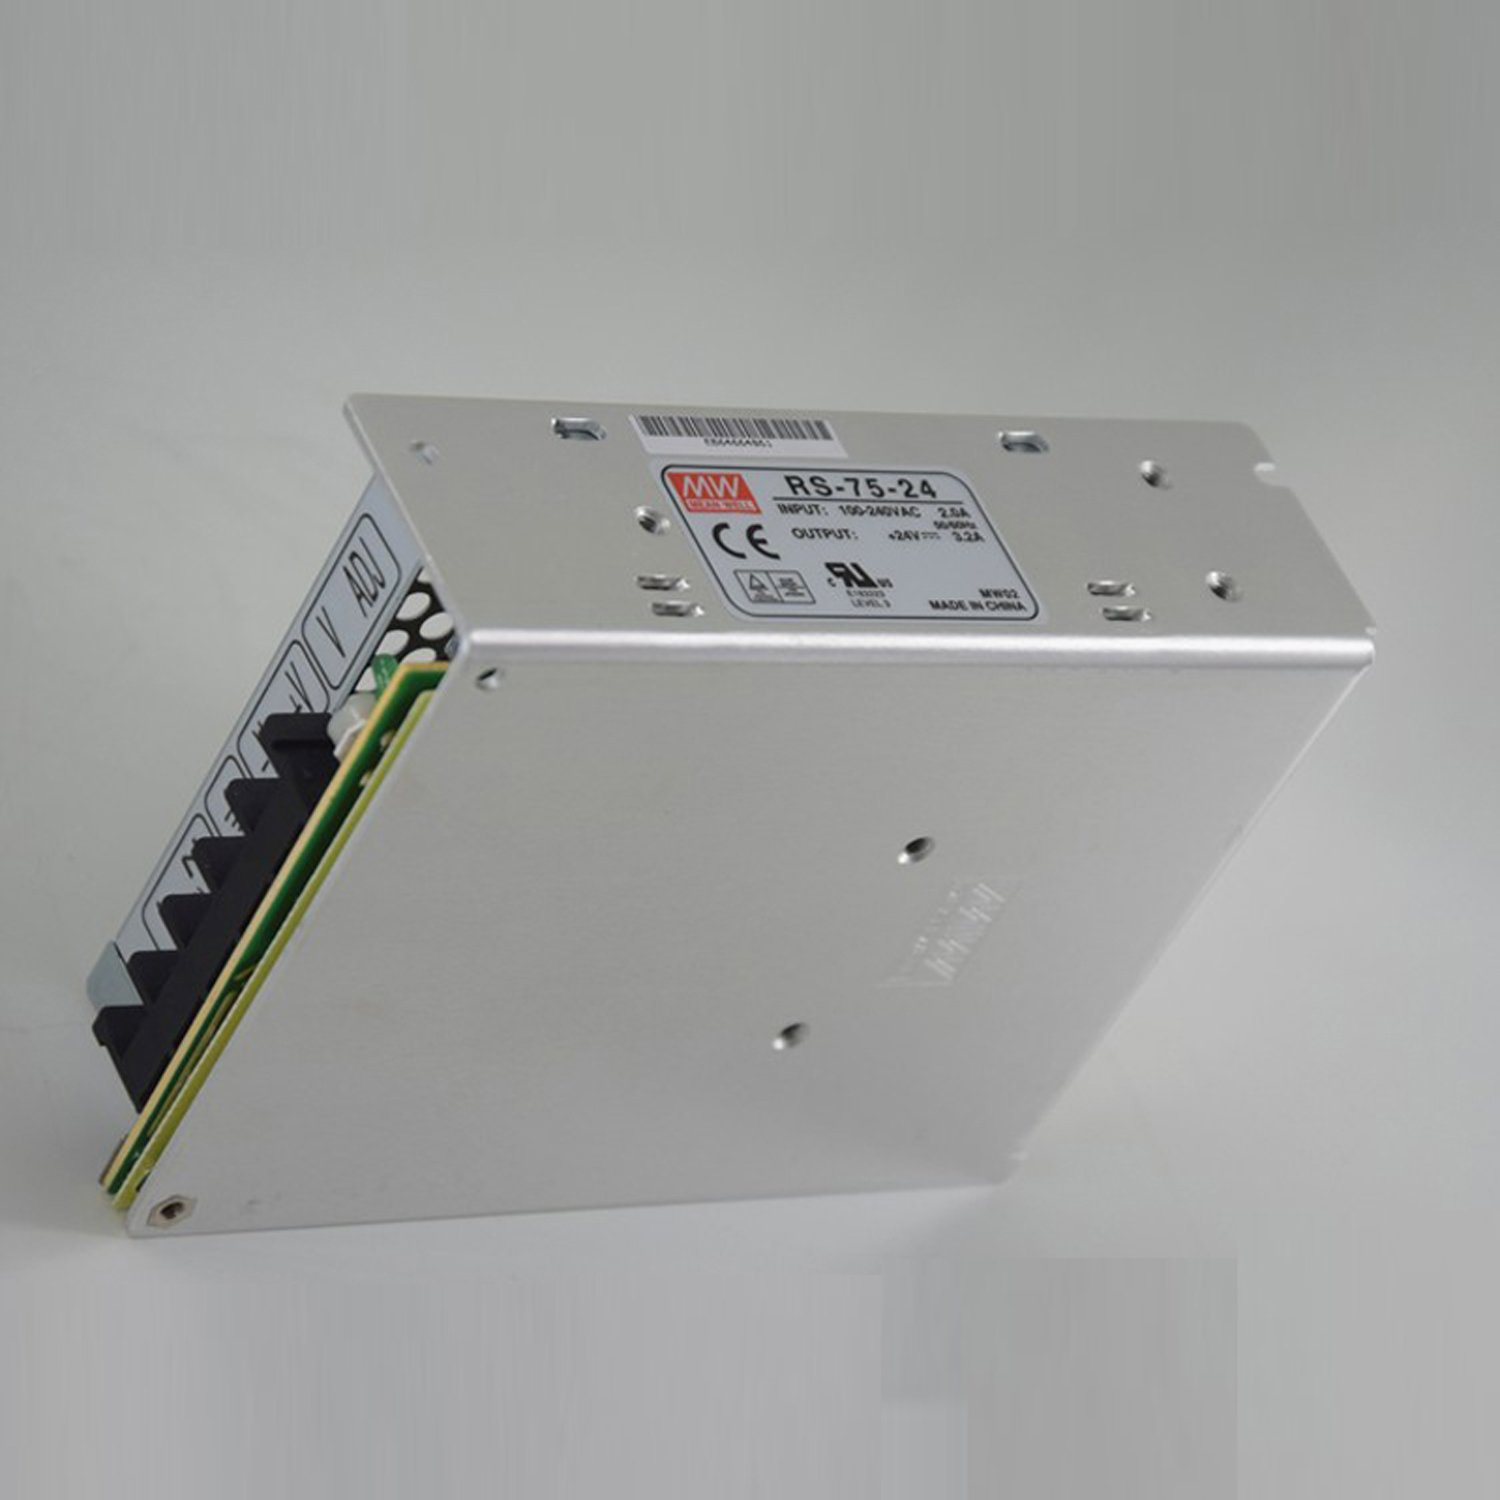 MEAN WELL RS-75-12 RS-75 Series 72 W Single Output 12 V AC/DC Switching Power Supply - 1 item(s)